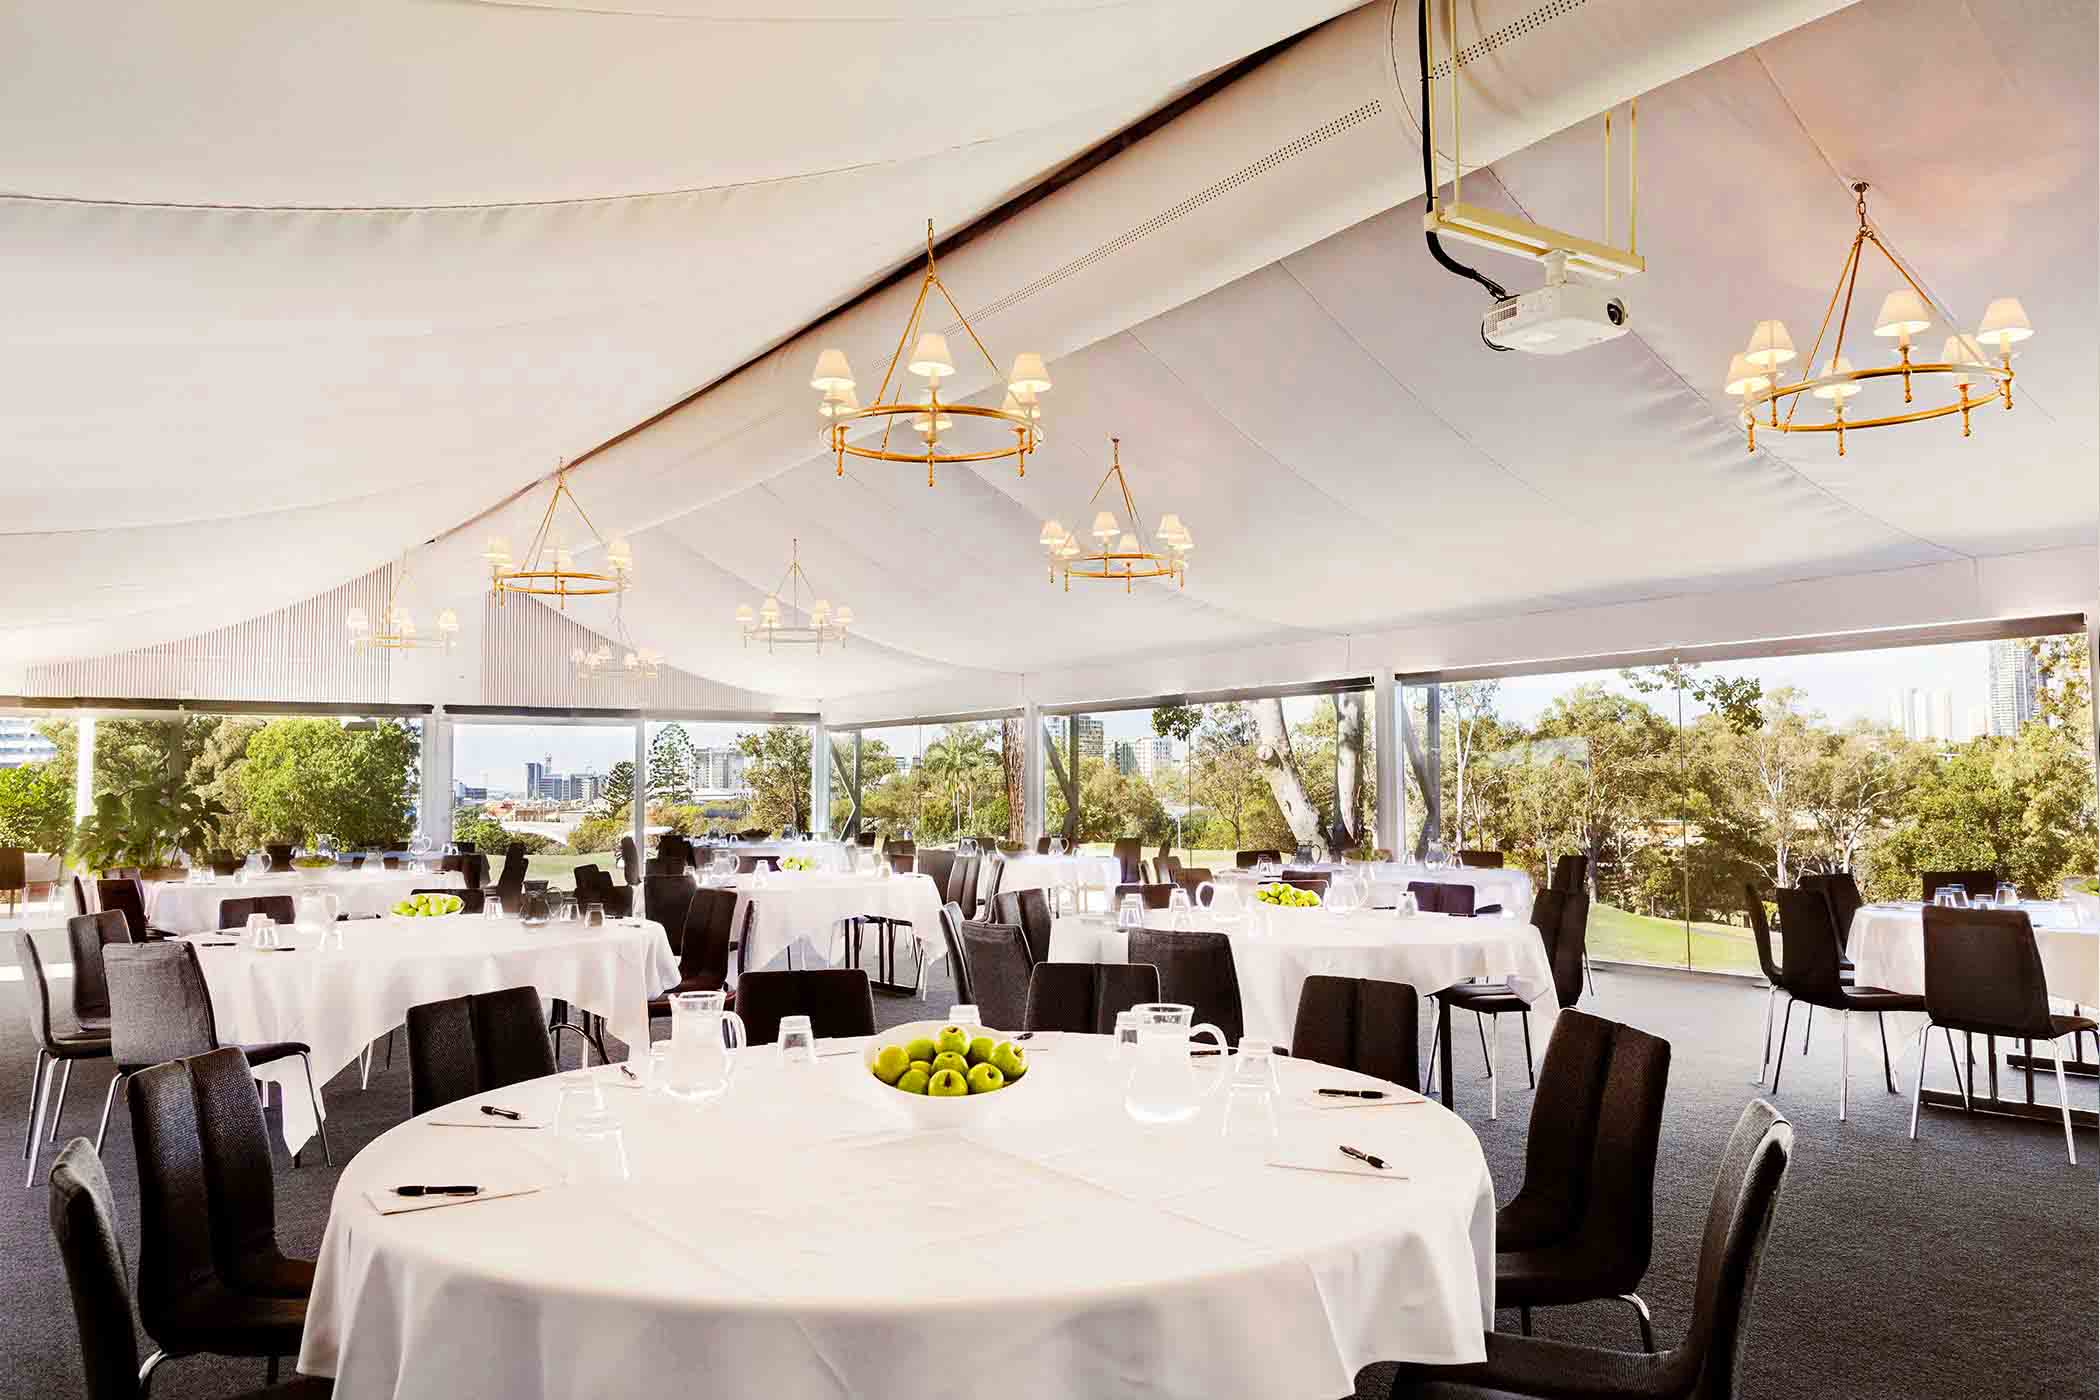 Wedding reception decorations online australia choice image wedding reception decorations online australia thank you for visiting junglespirit nowadays were excited to declare that we have discovered an incredibly junglespirit Images